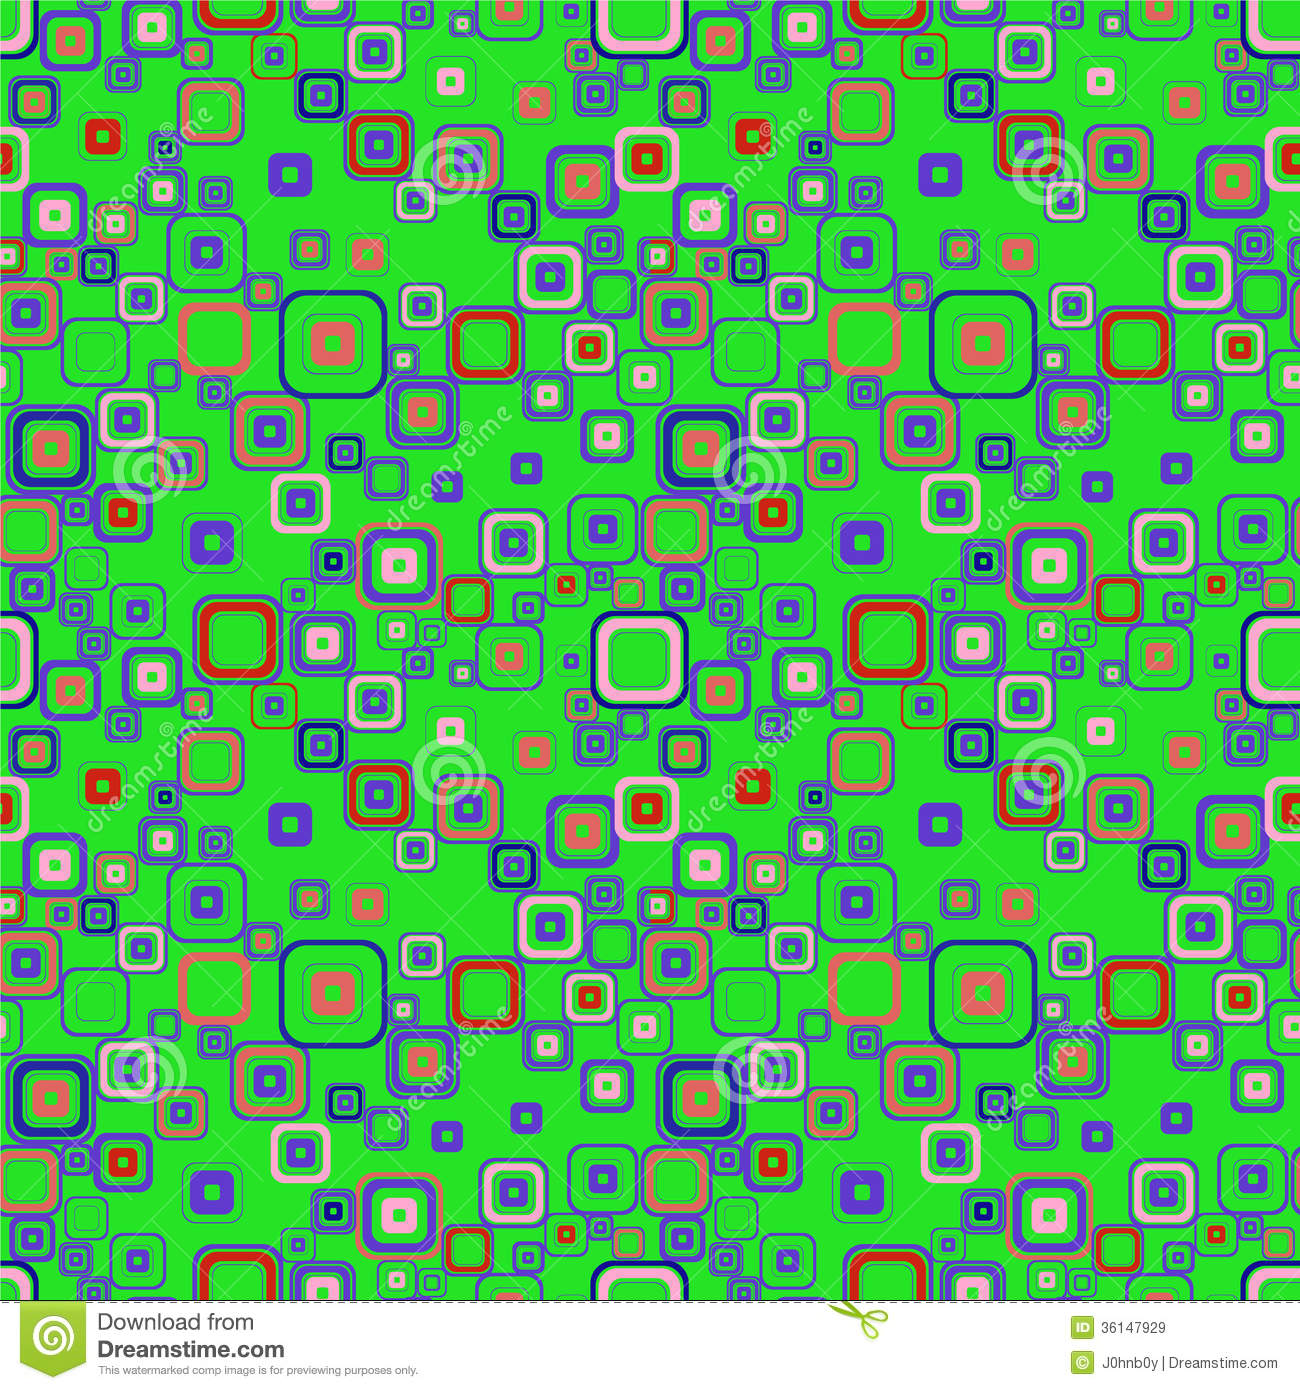 Abstract square pattern stock vector. Image of colored ...